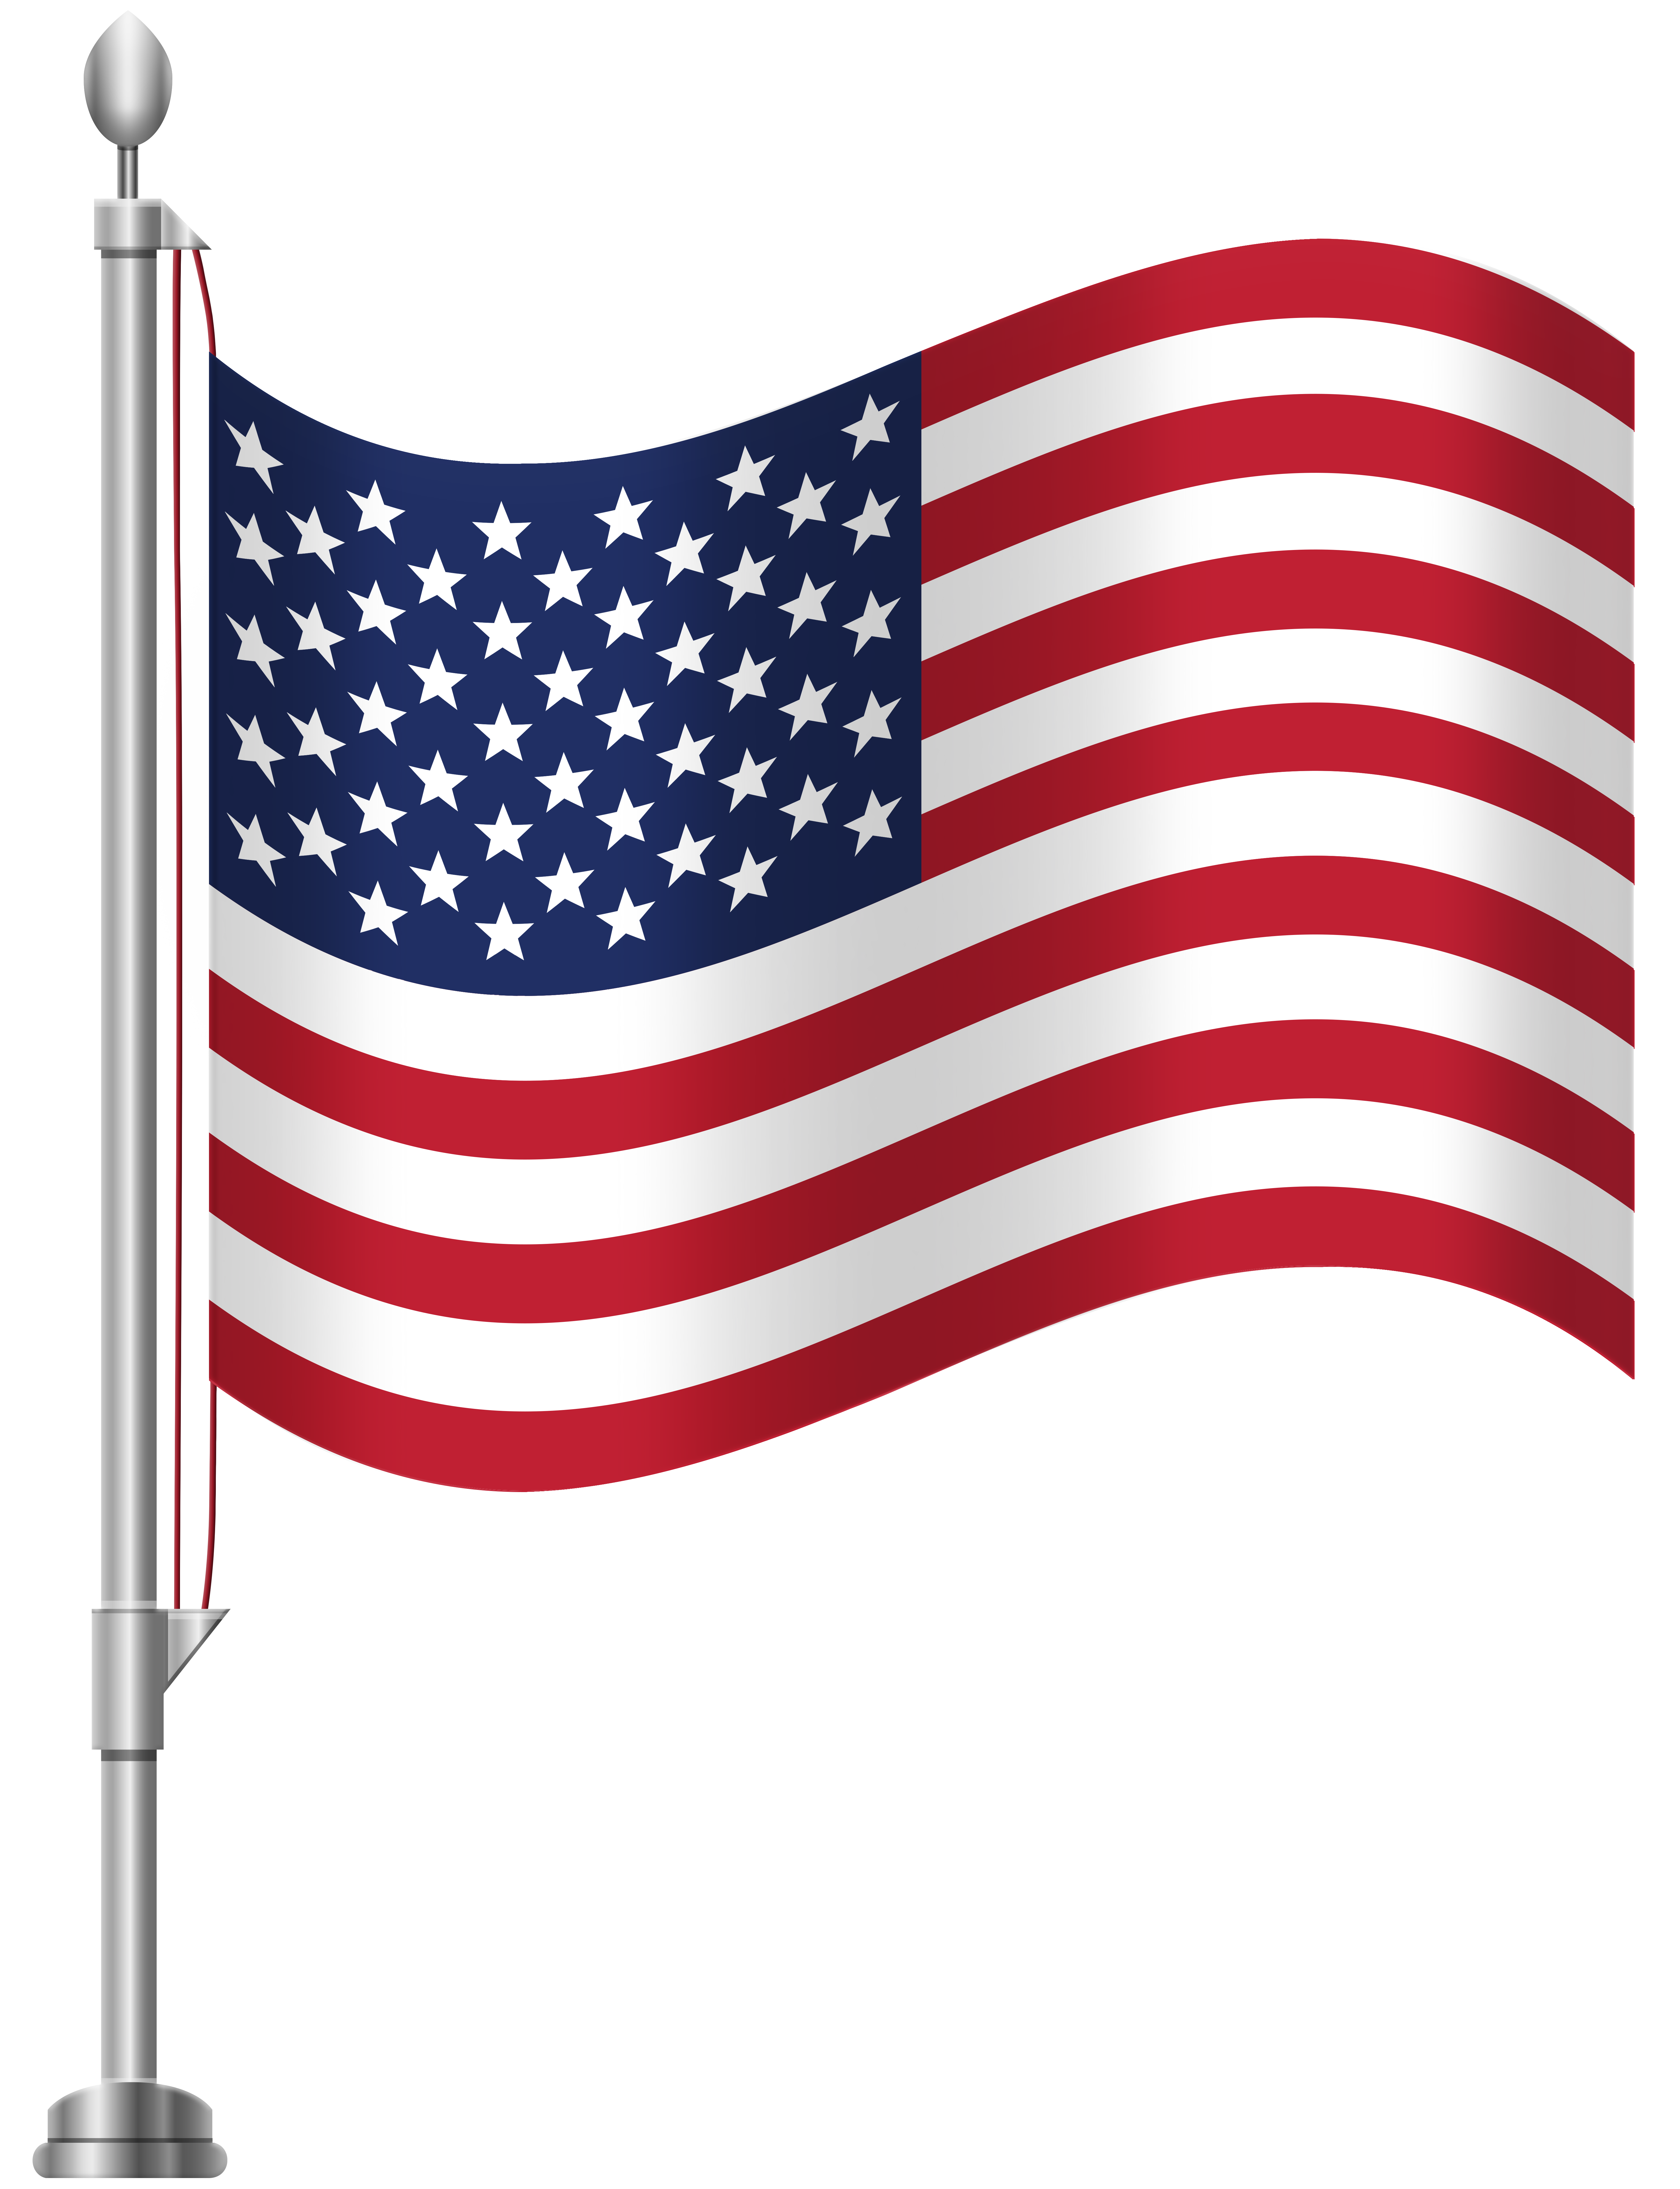 Clipart flag clip art freeuse download United States of America Flag PNG Clip Art - Best WEB Clipart clip art freeuse download